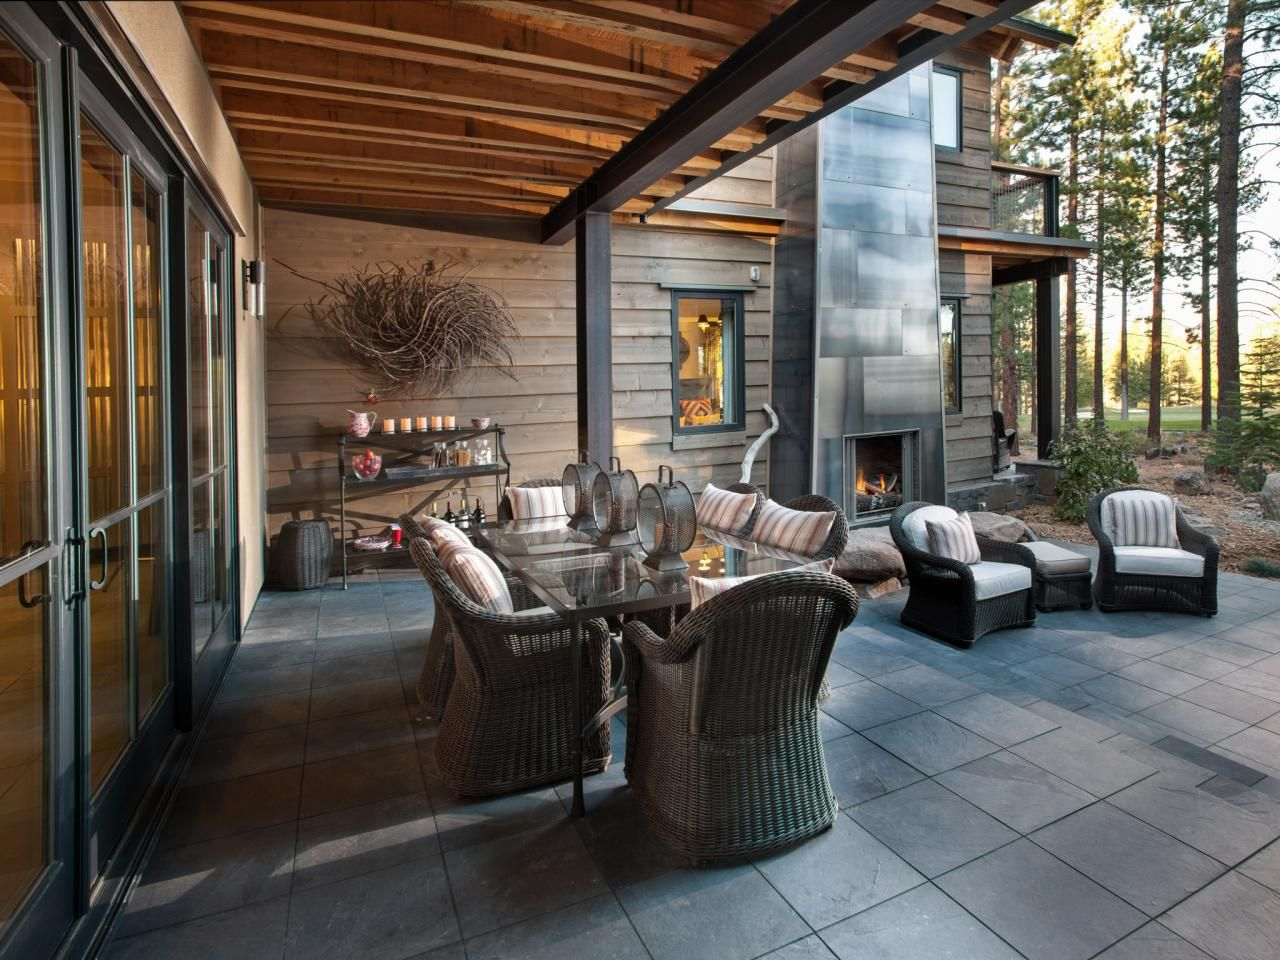 Outdoor kitchen from hgtv dream home 2014